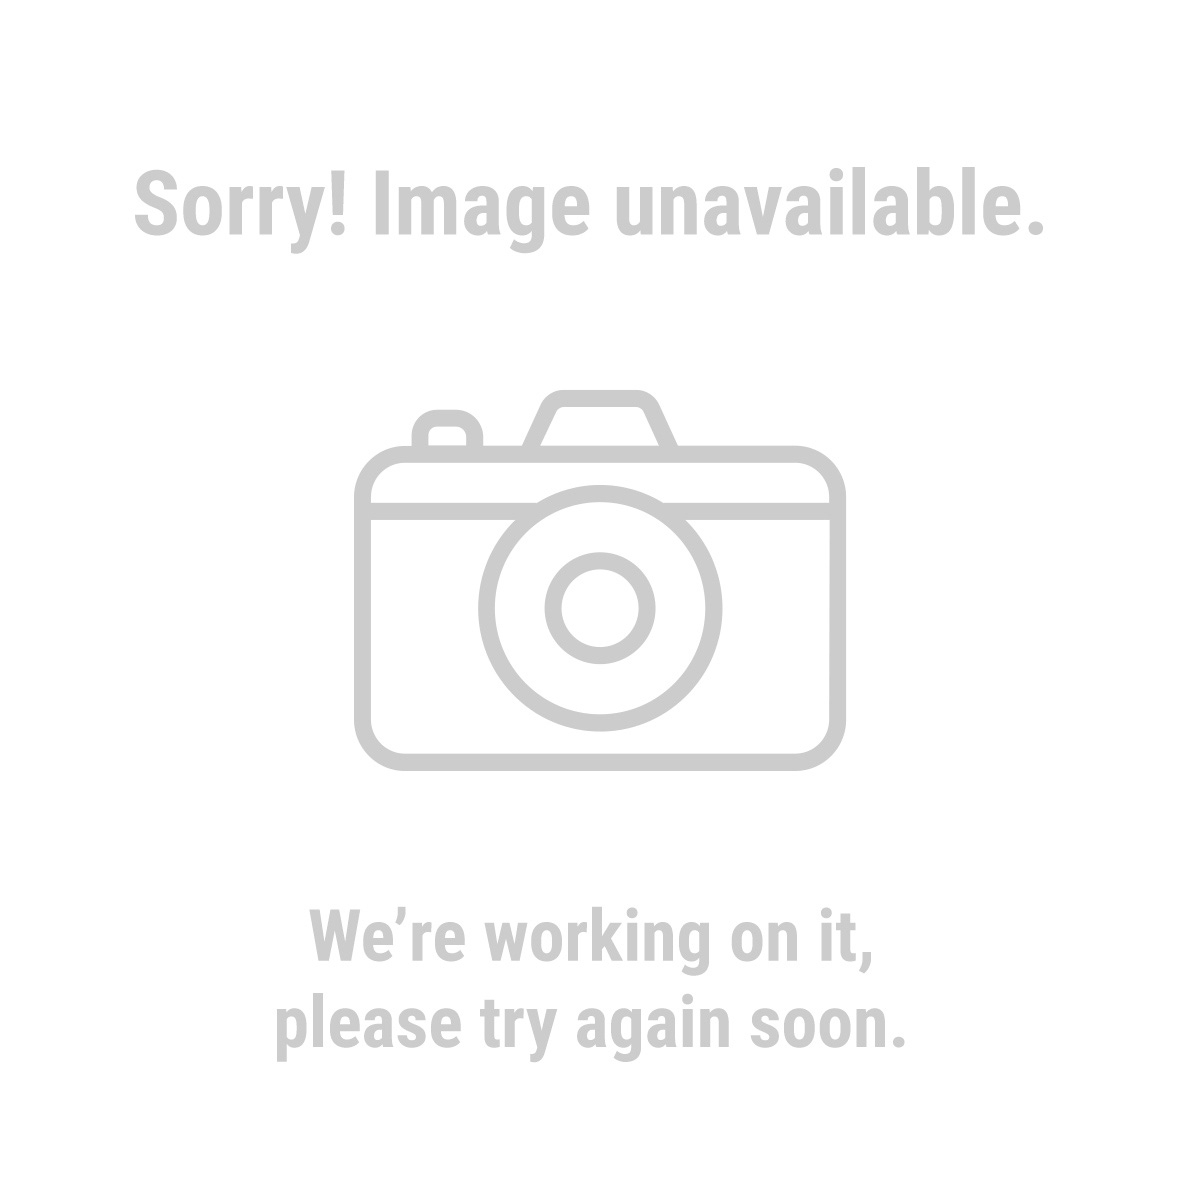 Warrior® 62657 100 Pc Security Bit Set with Case